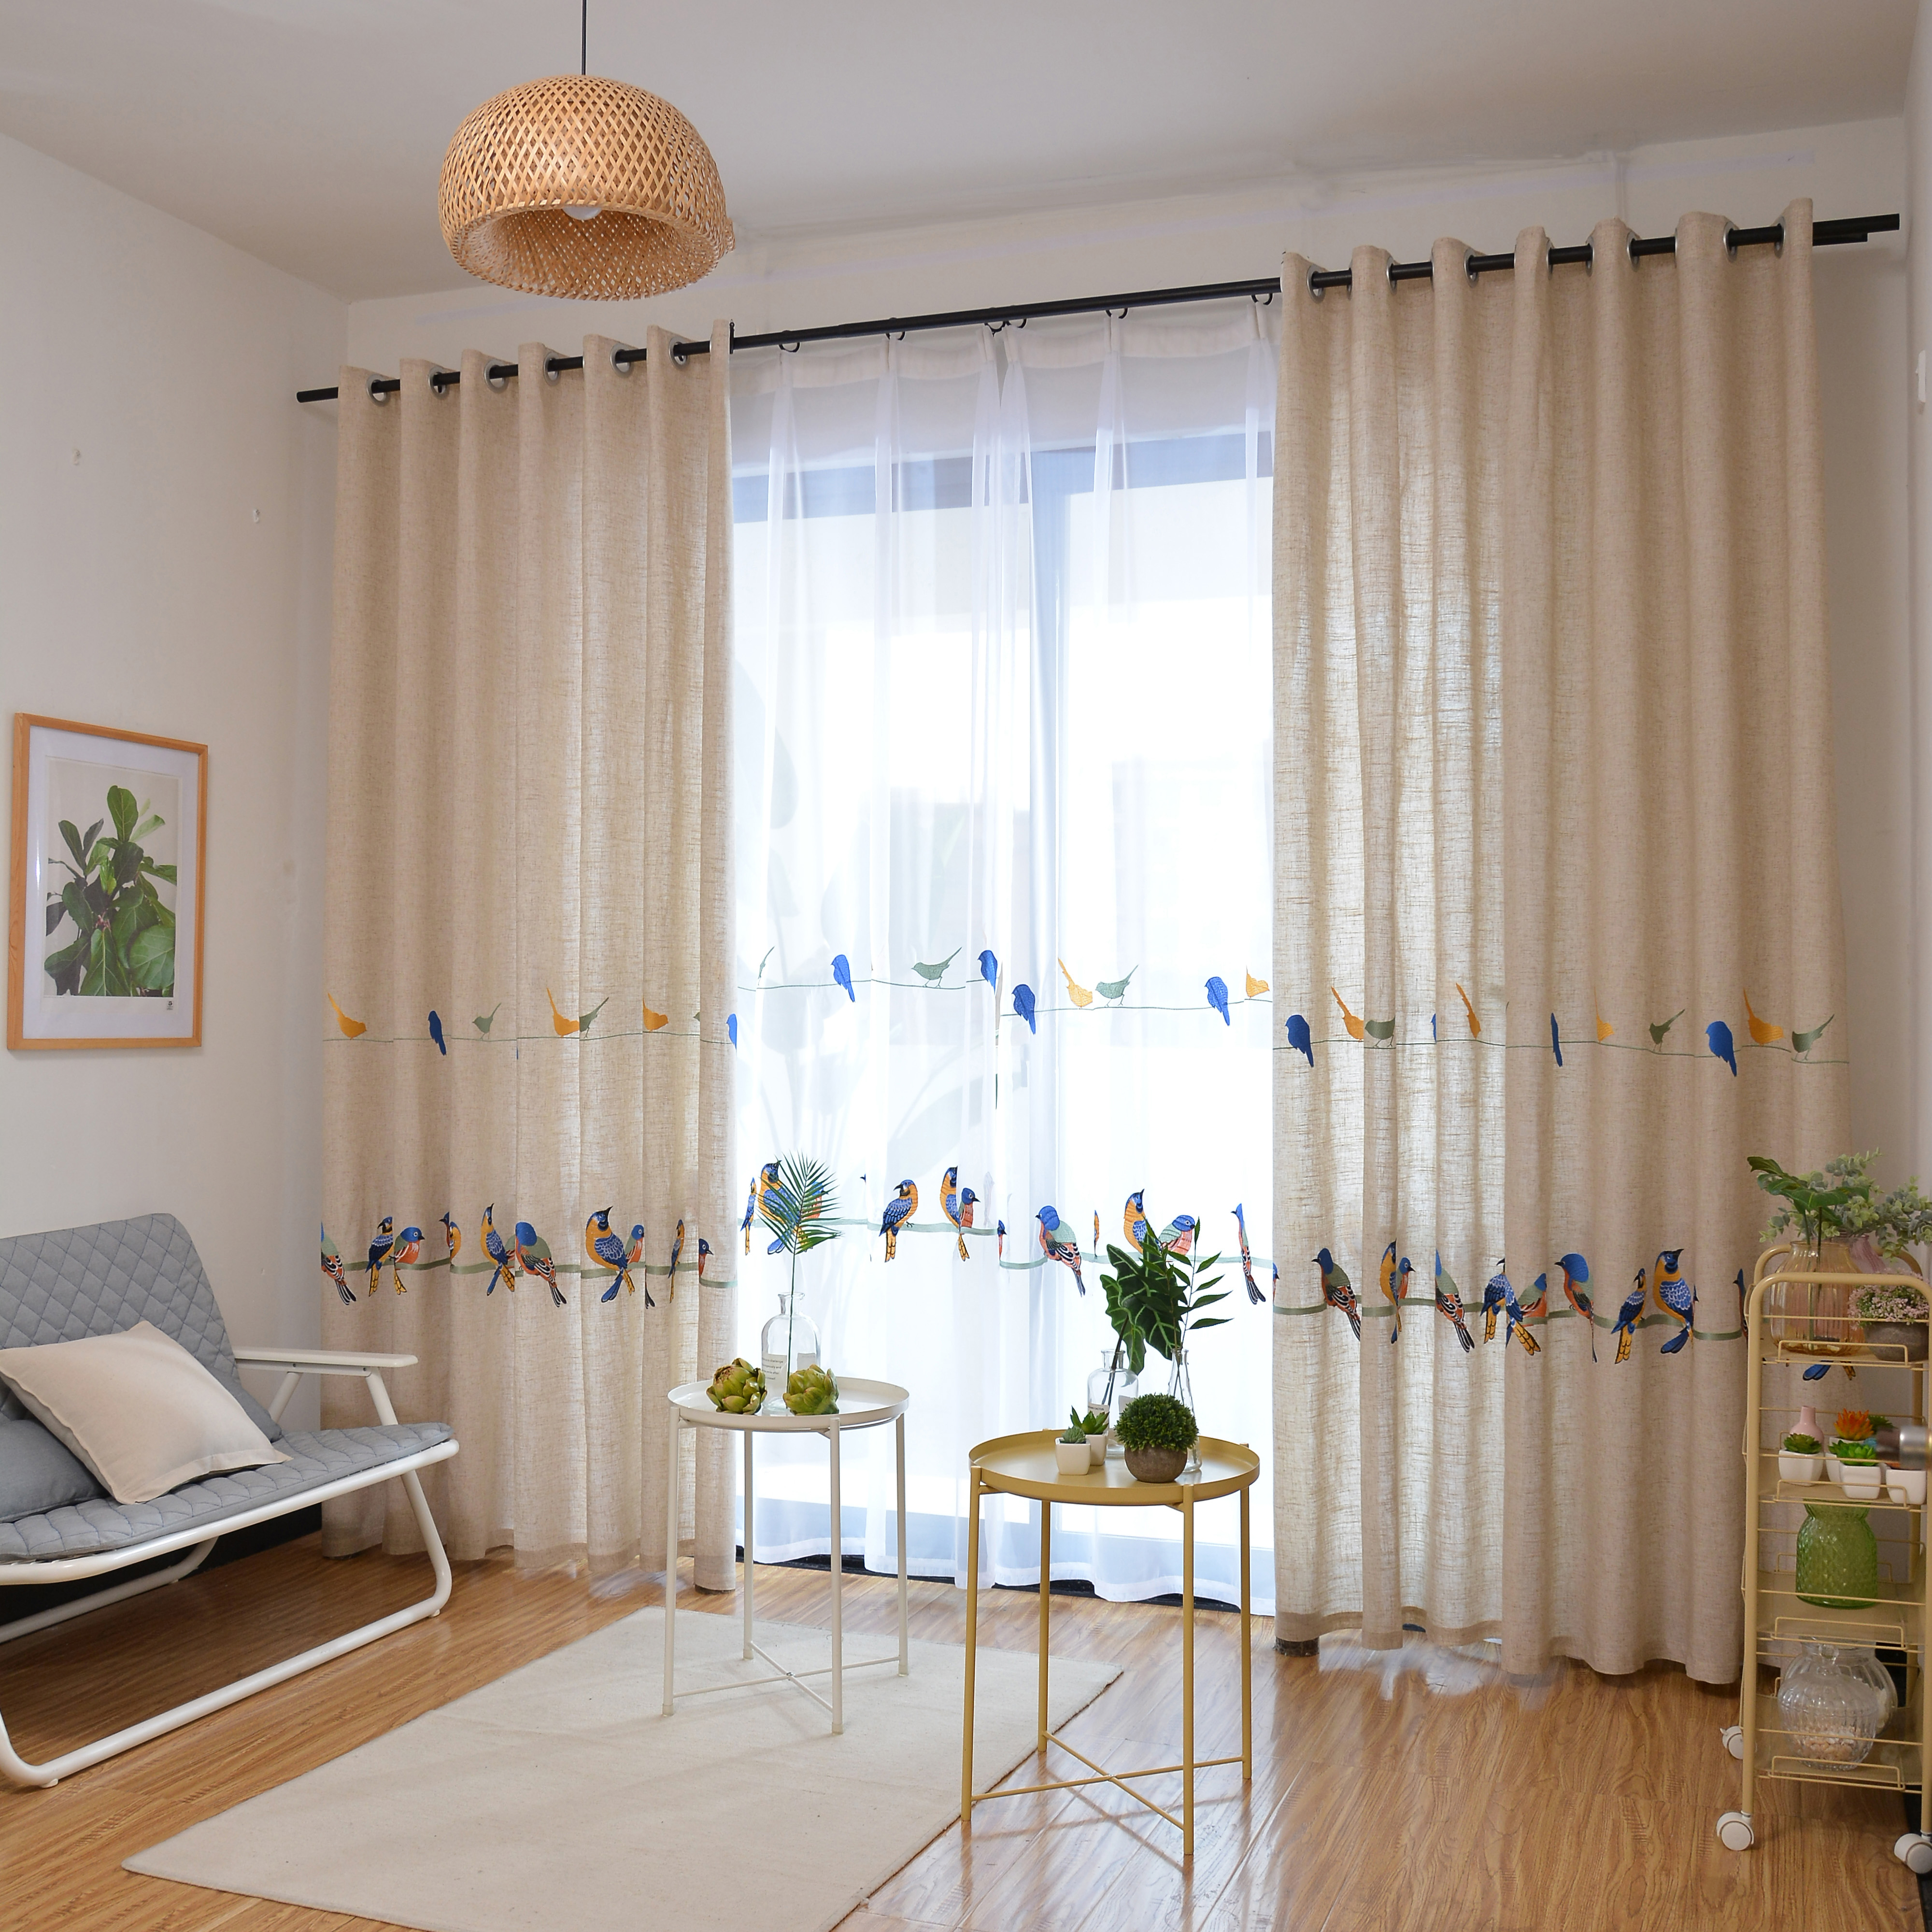 Image 3 - Cotton Linen Curtains for Living Room Bedroom Pastoral Curtain  with Embroidery Birds White Tulle Sheer Curtain Window  TreatmentCurtains